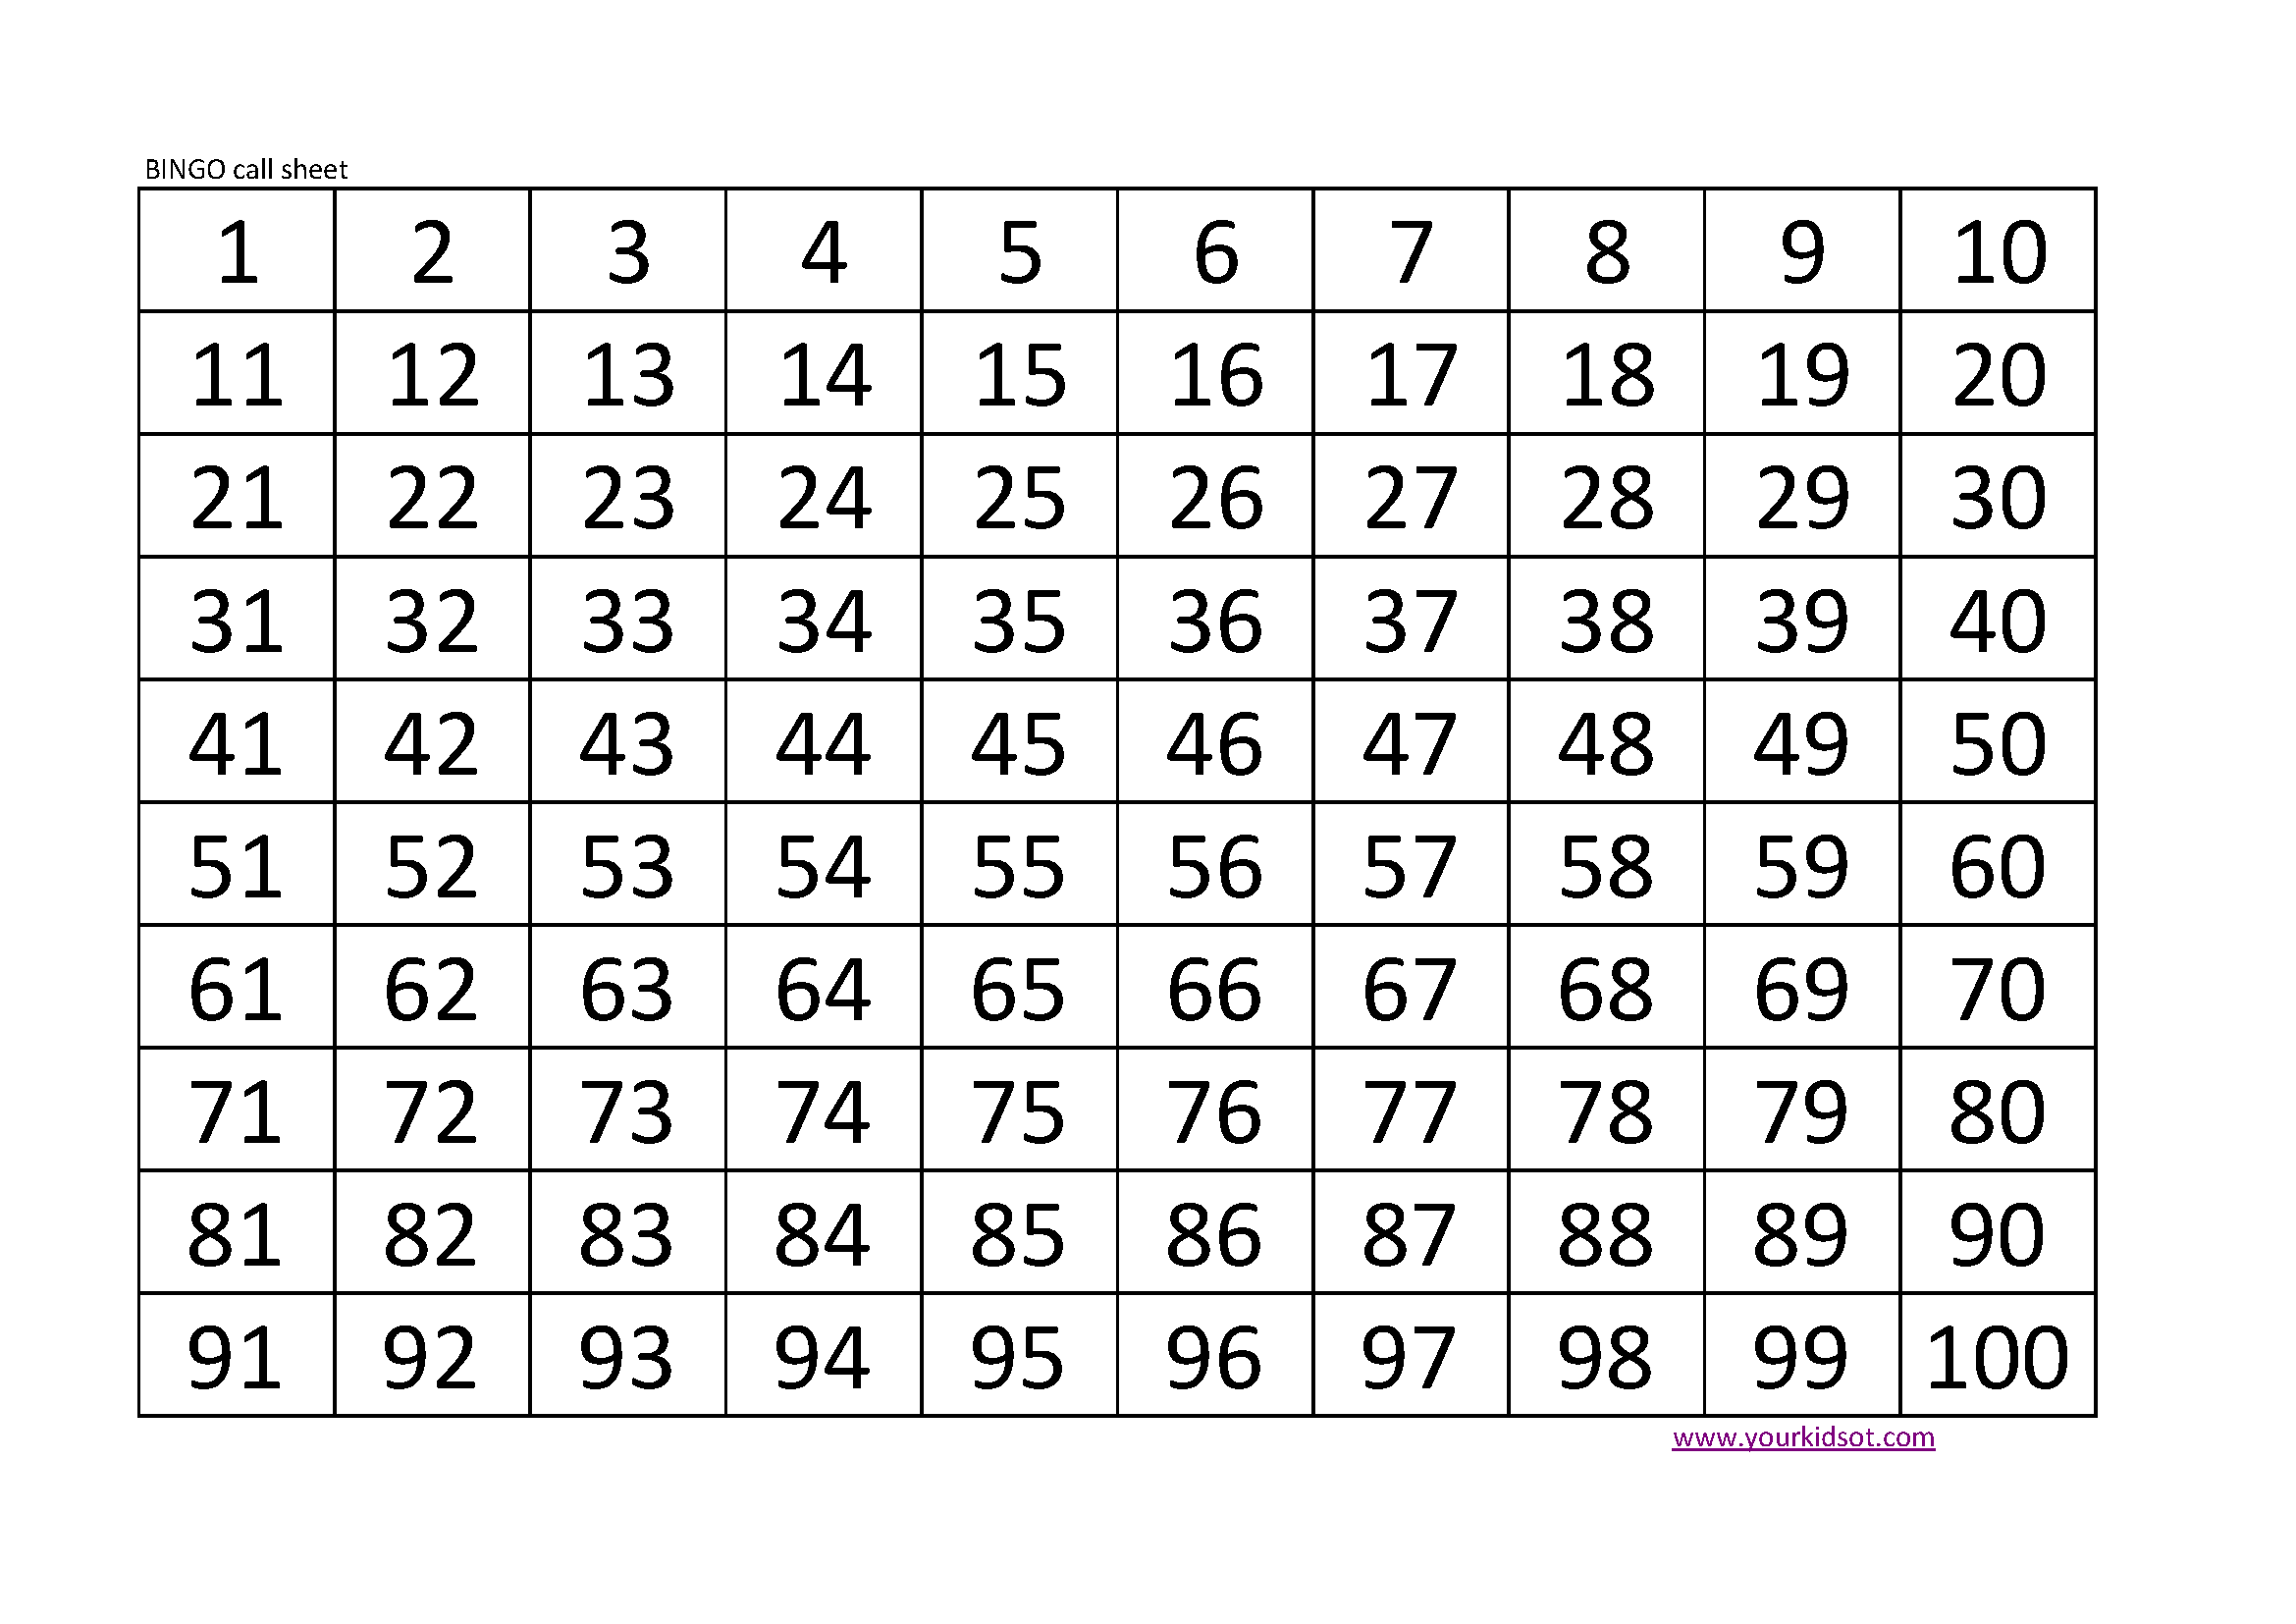 Soft image for bingo calls printable